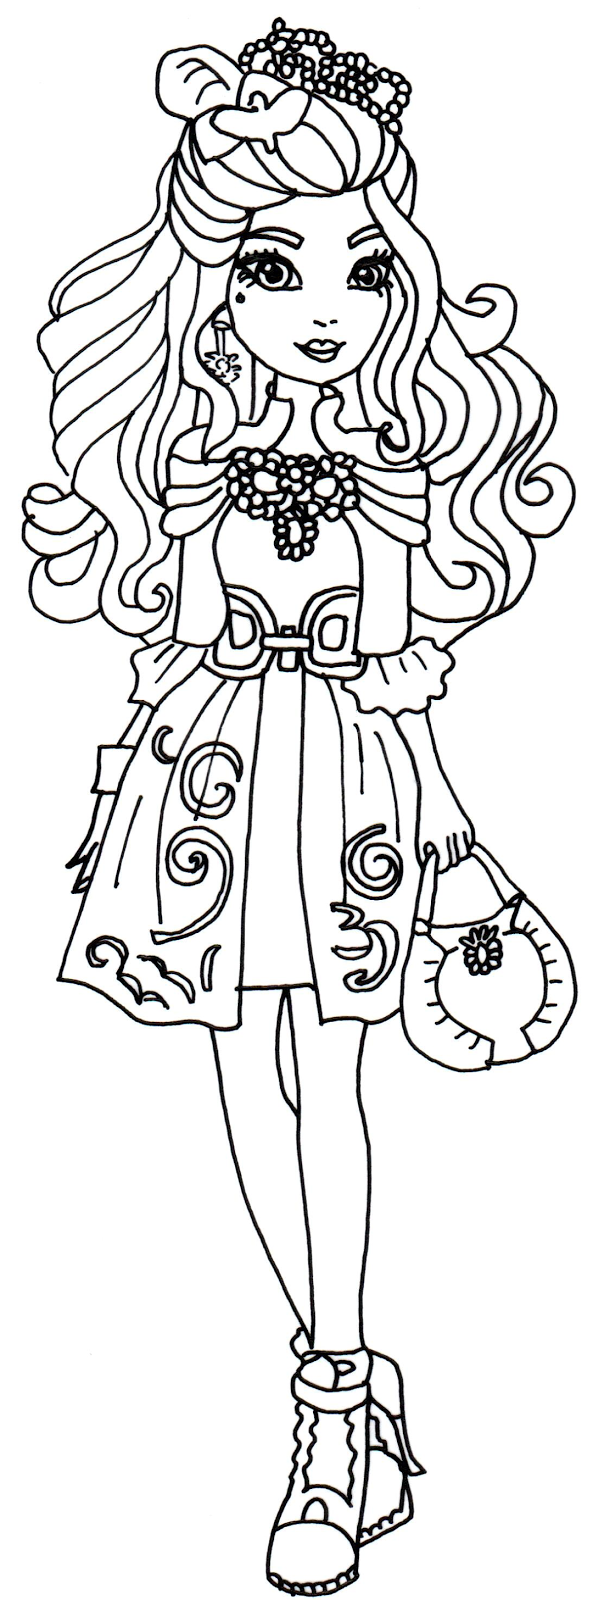 Free Printable Ever After High Coloring Pages Darling